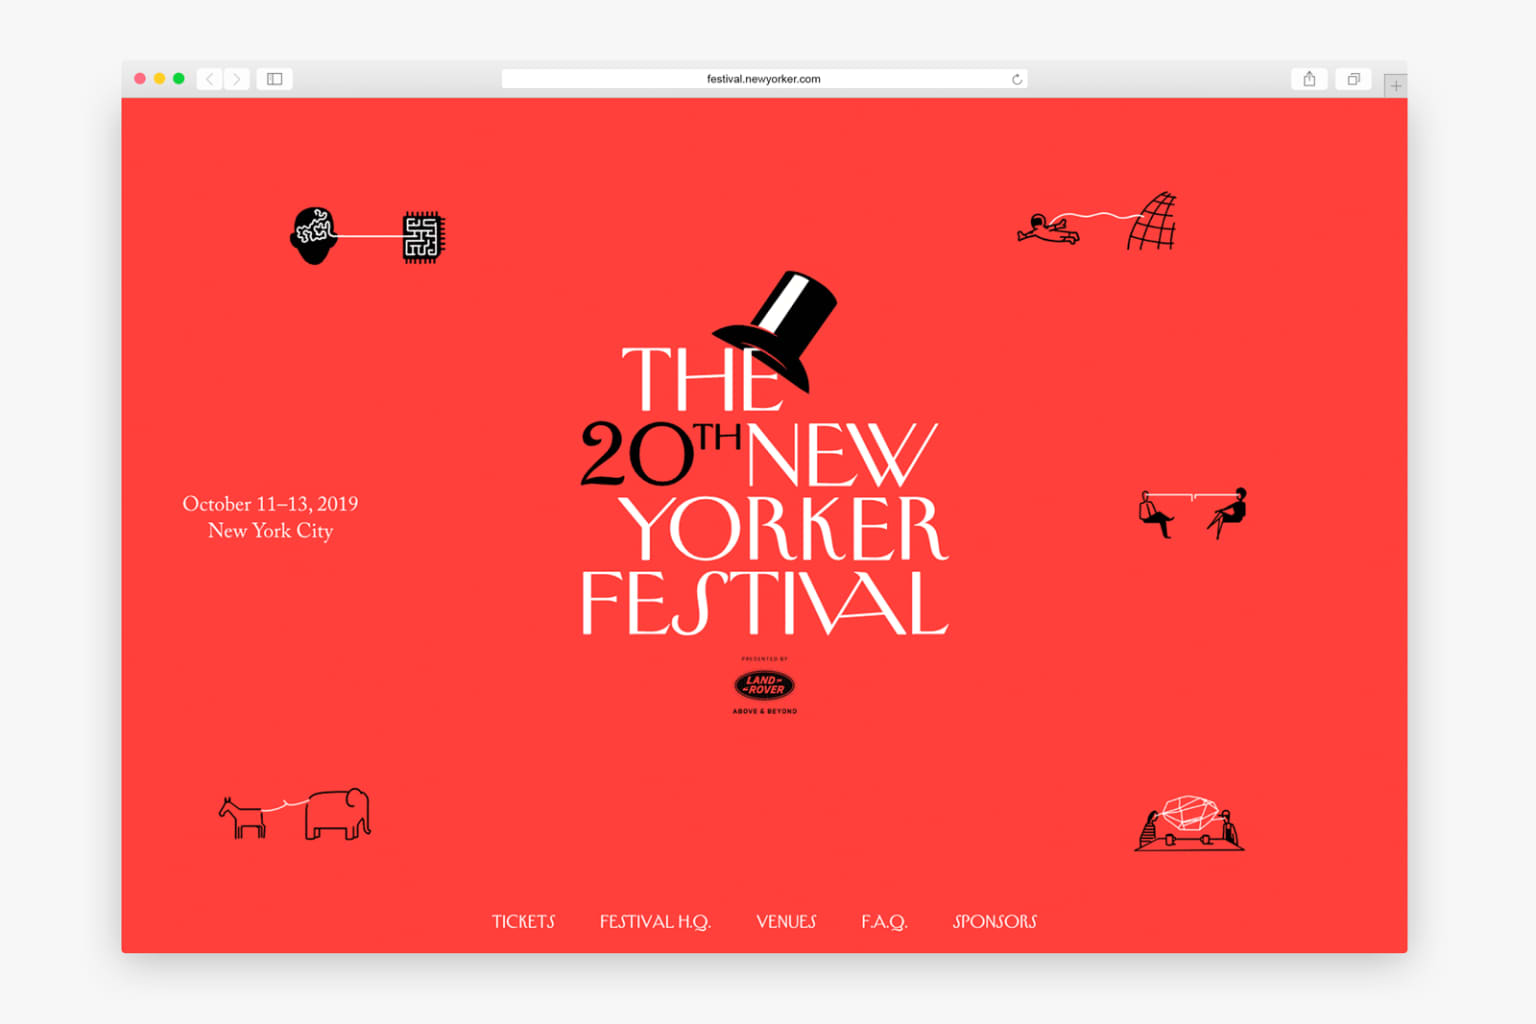 The 20th New Yorker Festival